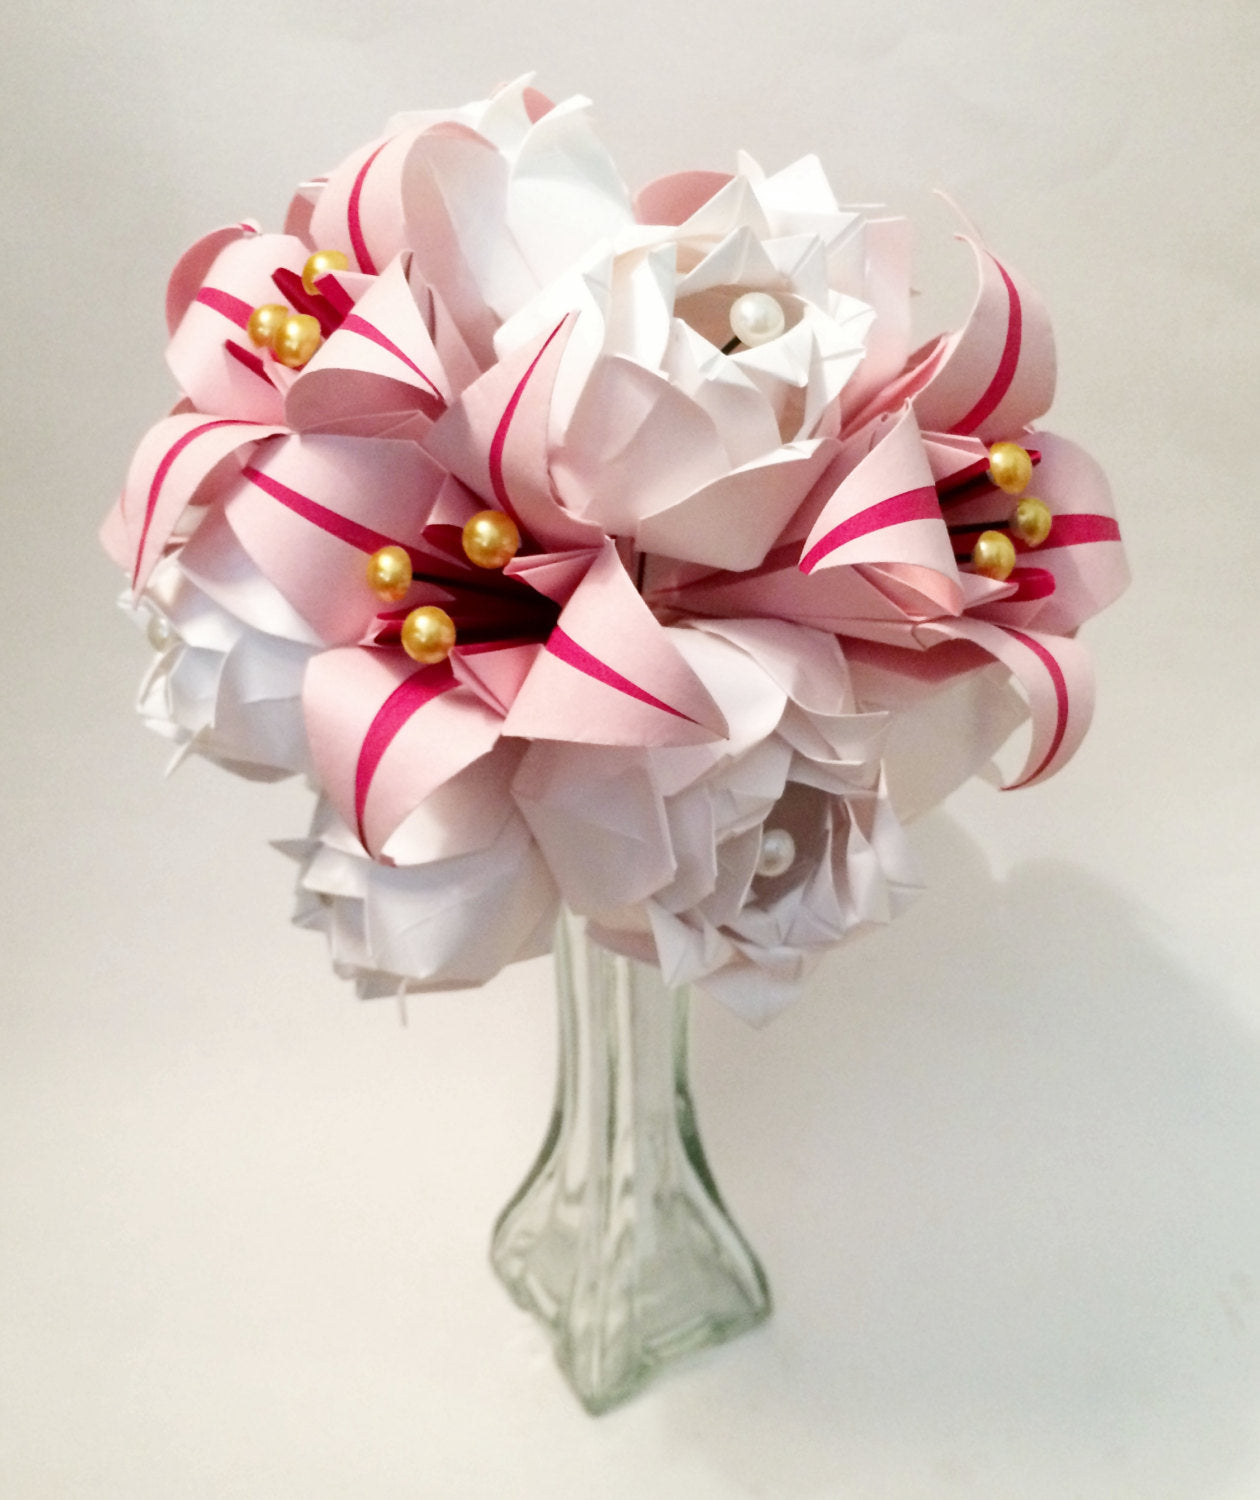 Paper Roses & Lilies bouquet- one of a kind origami, perfect for her, anniversary gift, wedding bouquet, paper flowers, wedding bouquet